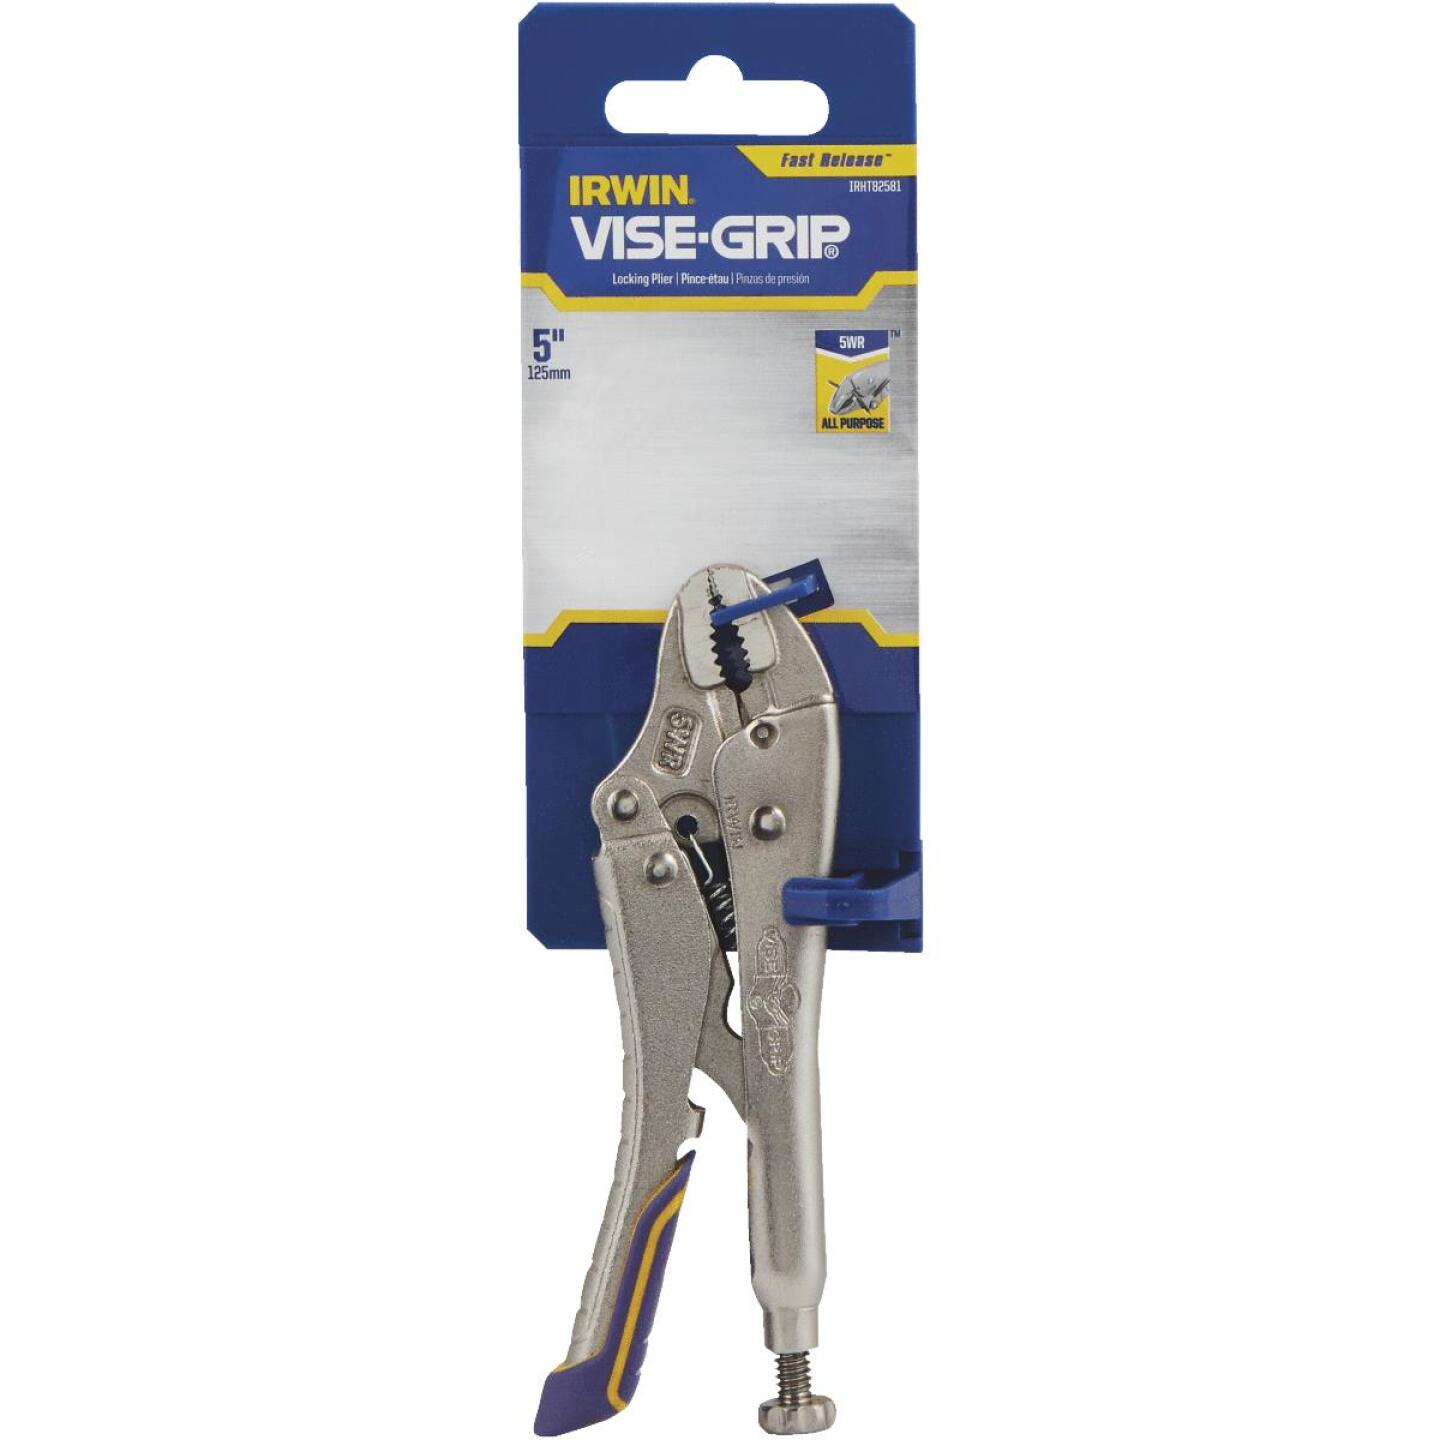 Irwin Vise-Grip Fast Release 5 In. Curved Jaw Locking Pliers Image 2